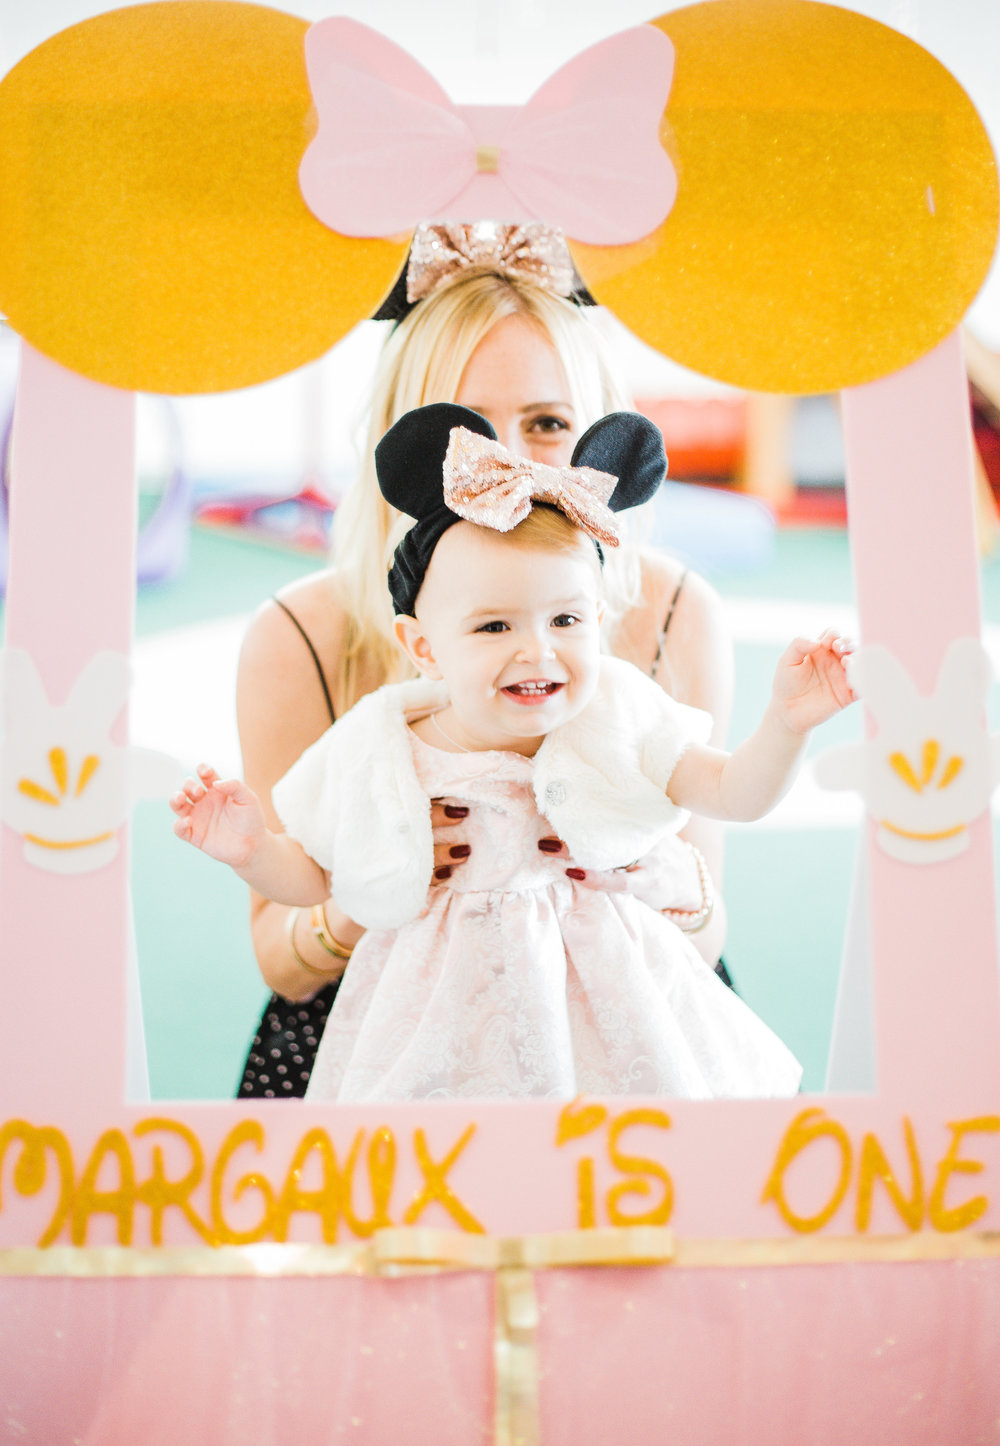 Margaux's_1st_Birthday_11.18.17_-62.jpg